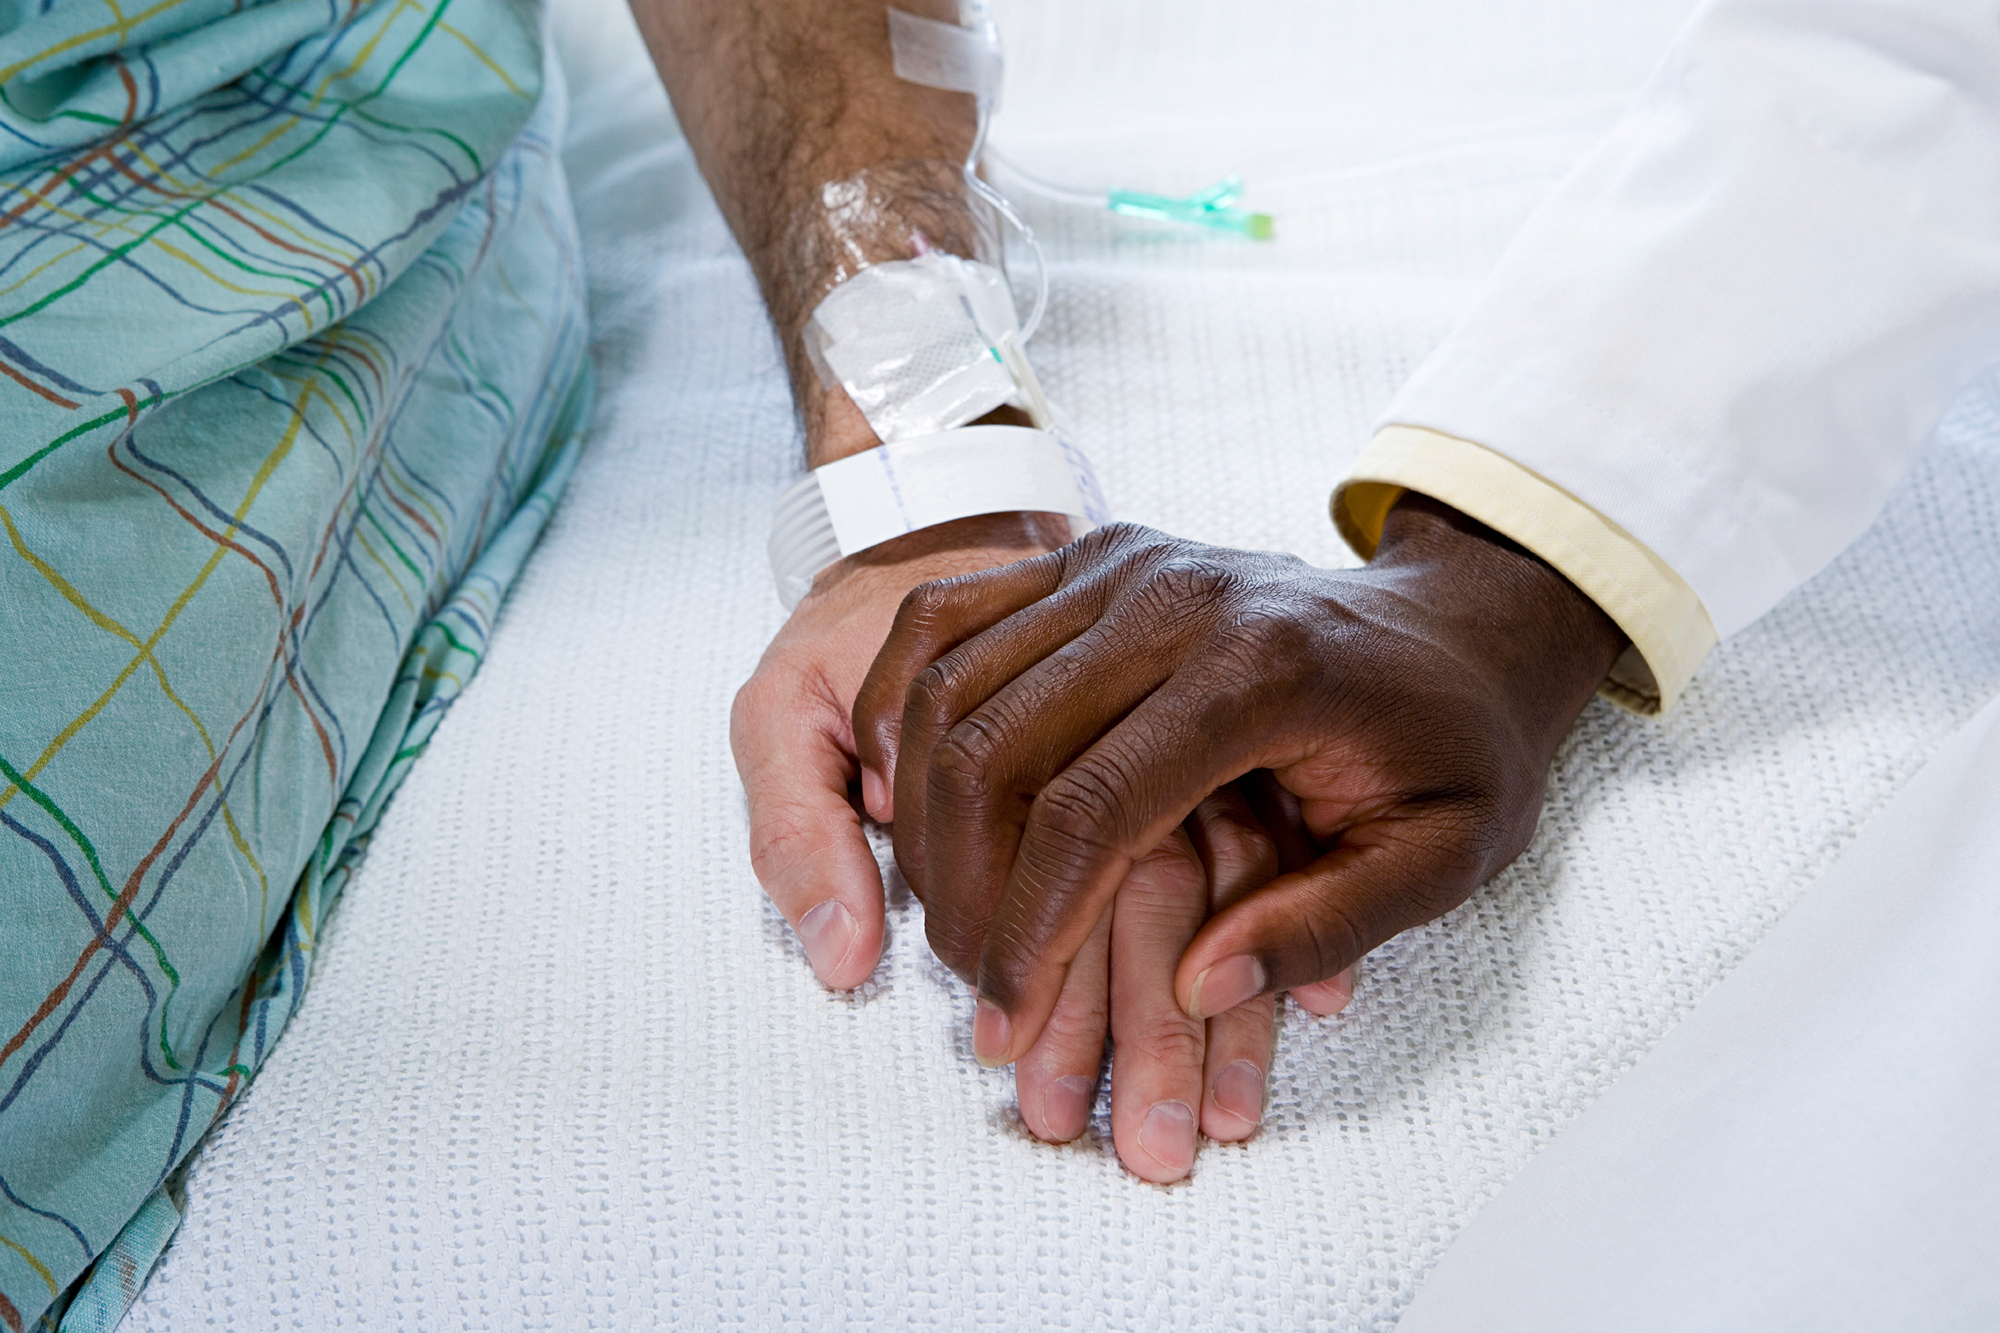 Intensive End-Of-Life Care On The Rise For Cancer Patients